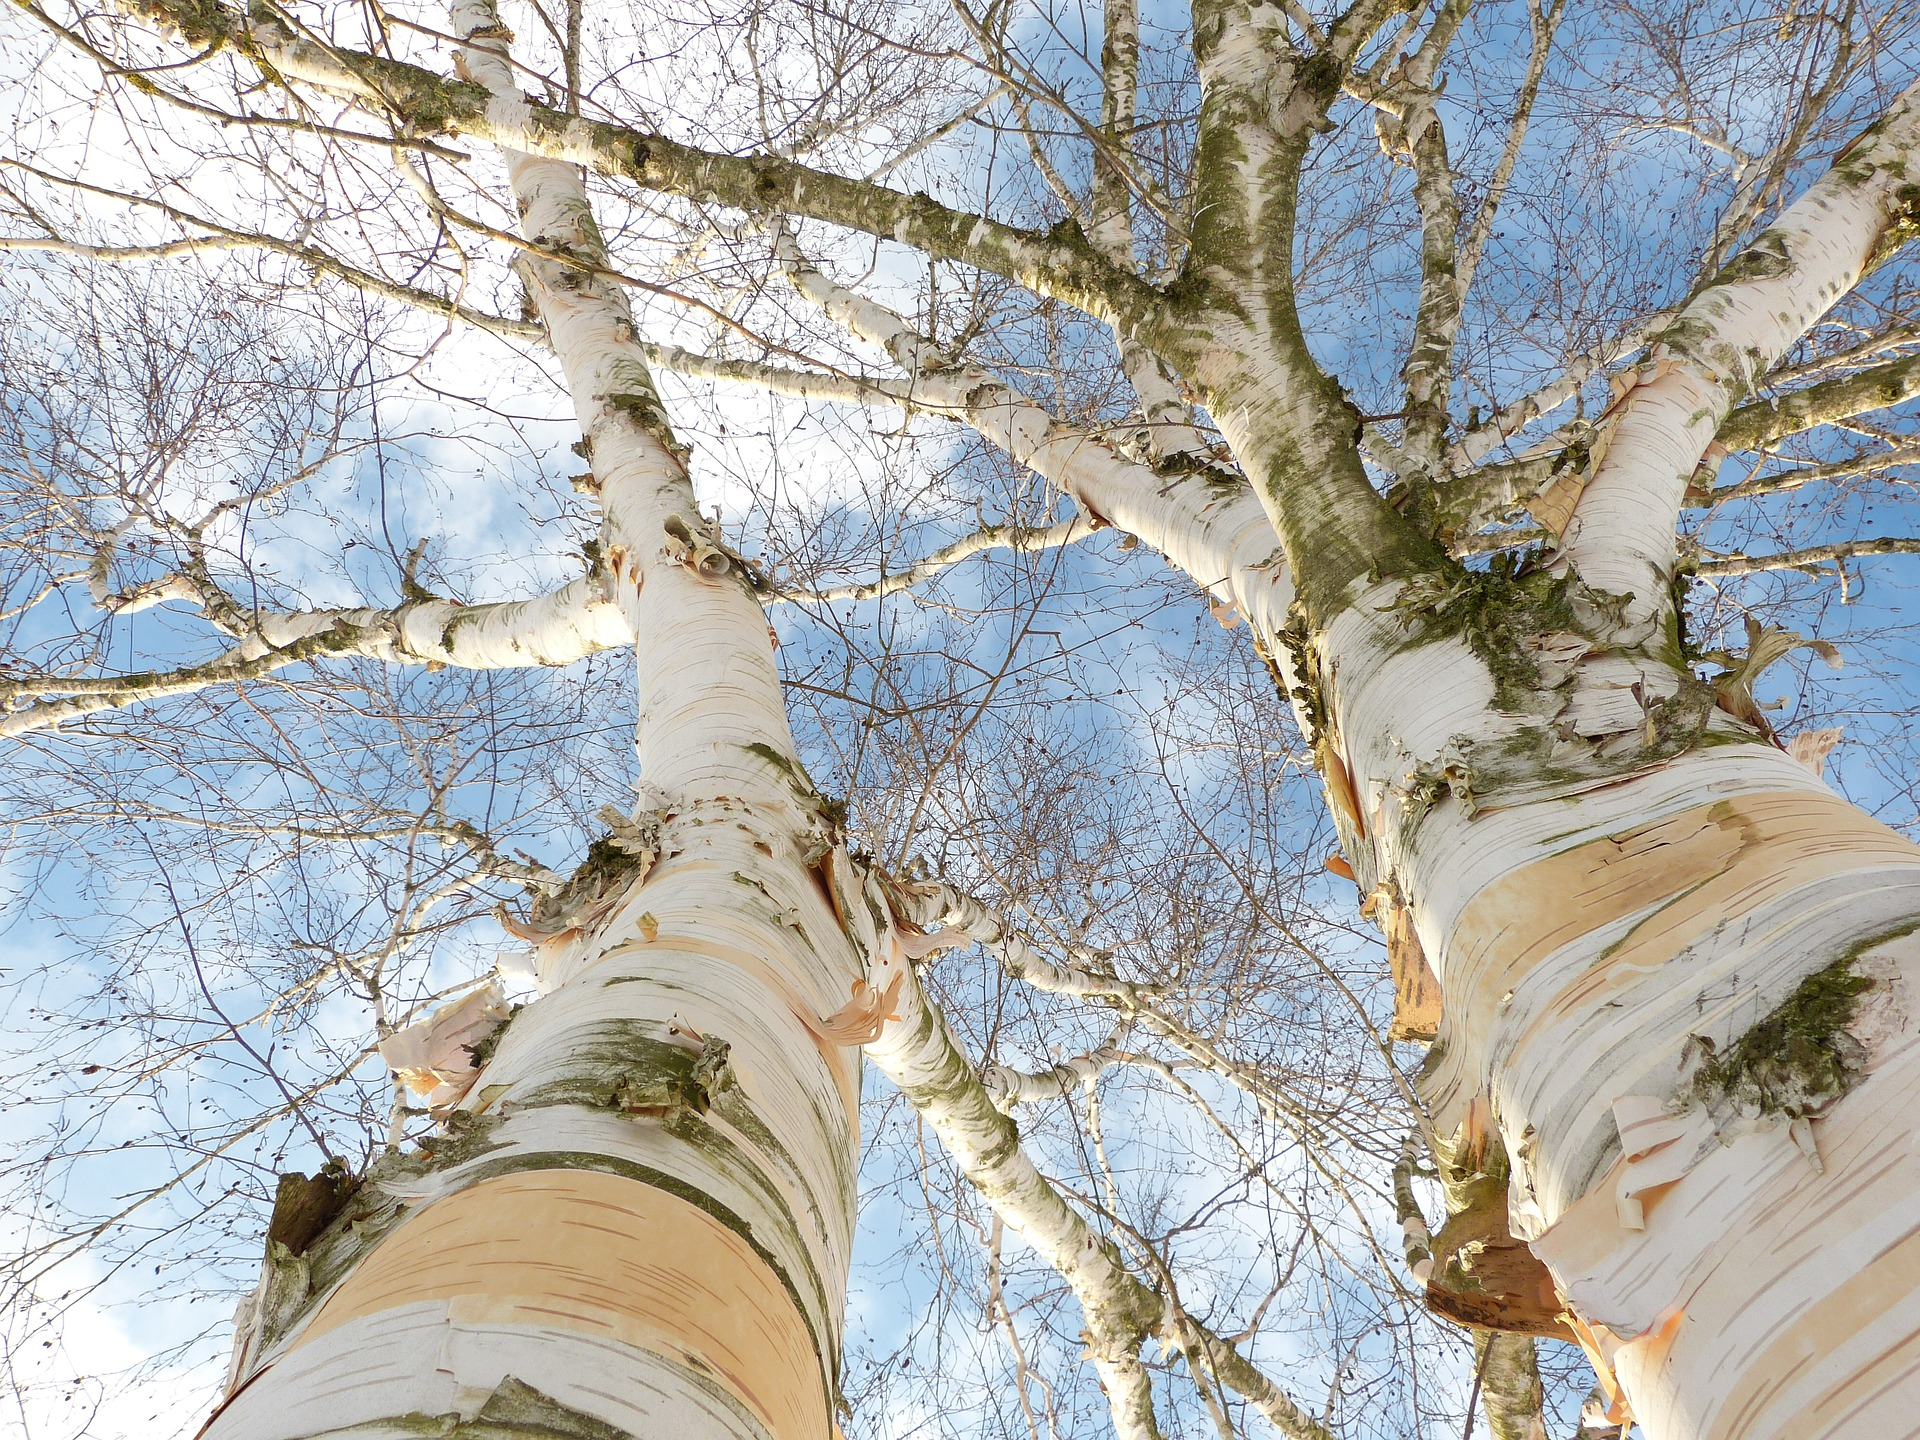 Partners: Two birches standing close to each other, photographed from the bottom. White trunks with branches above them with blue sky.